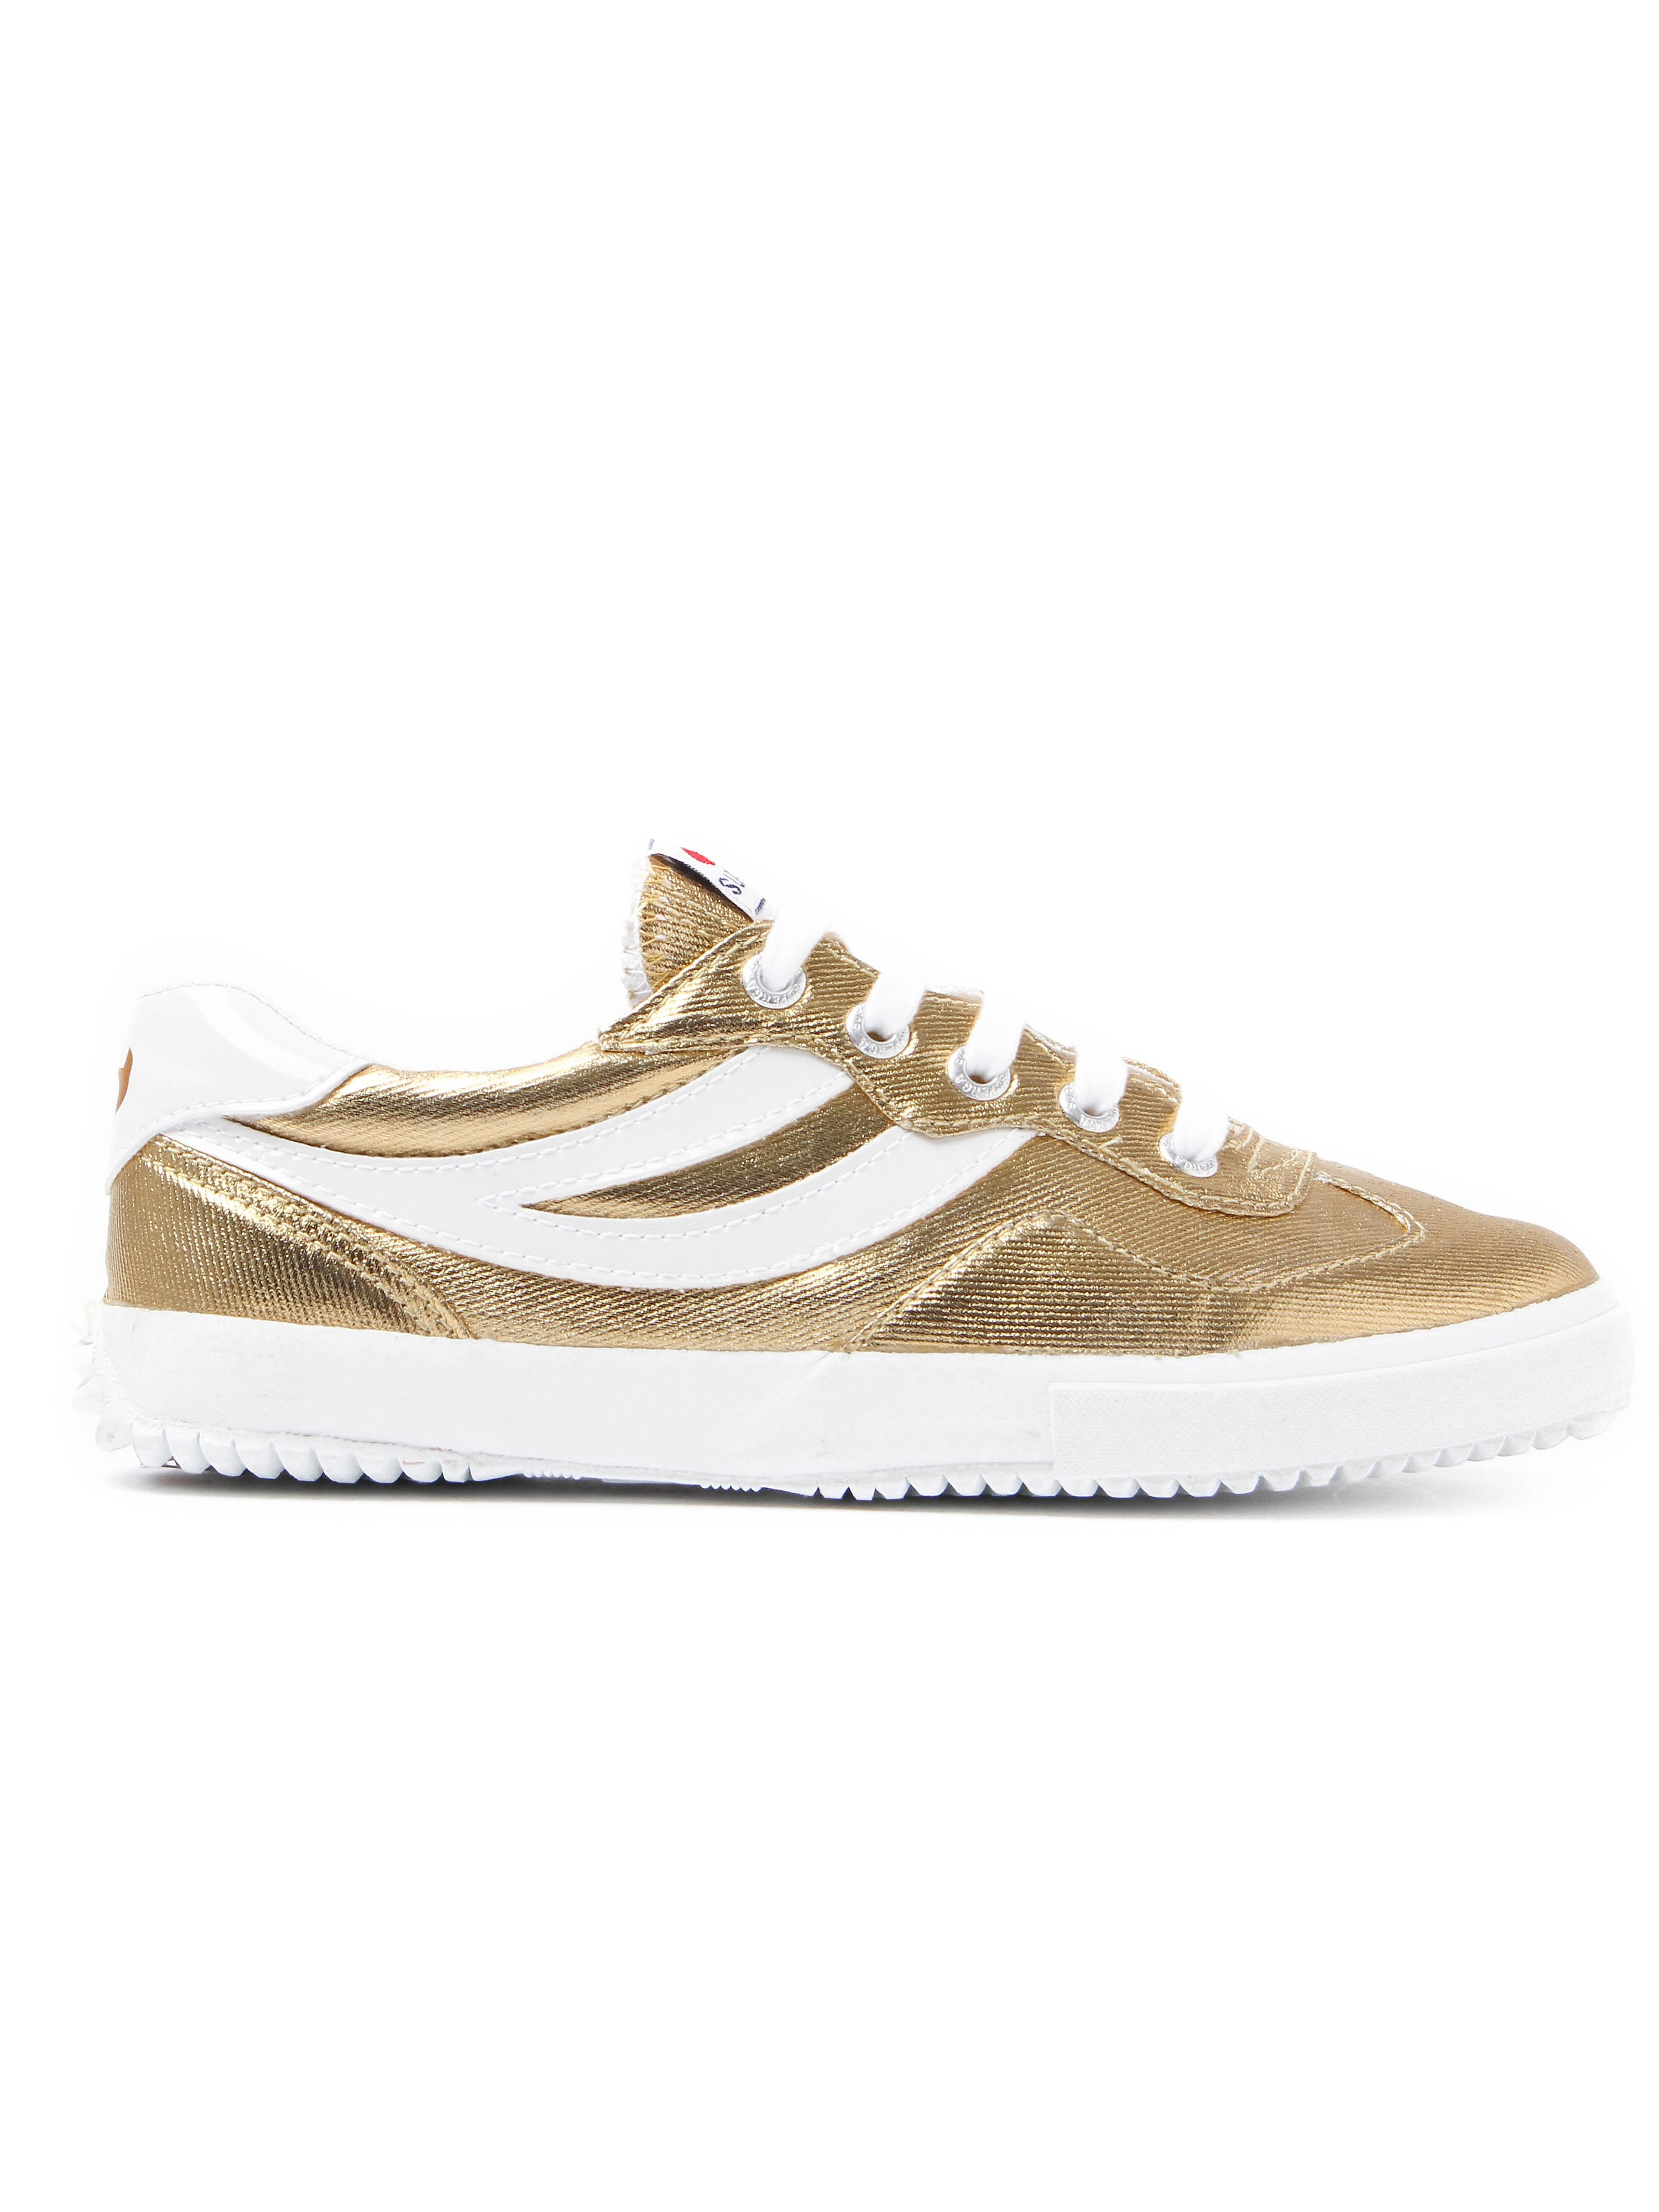 Superga Women's 2832 Cotmetw Metallic & Canvas Trainers - Gold